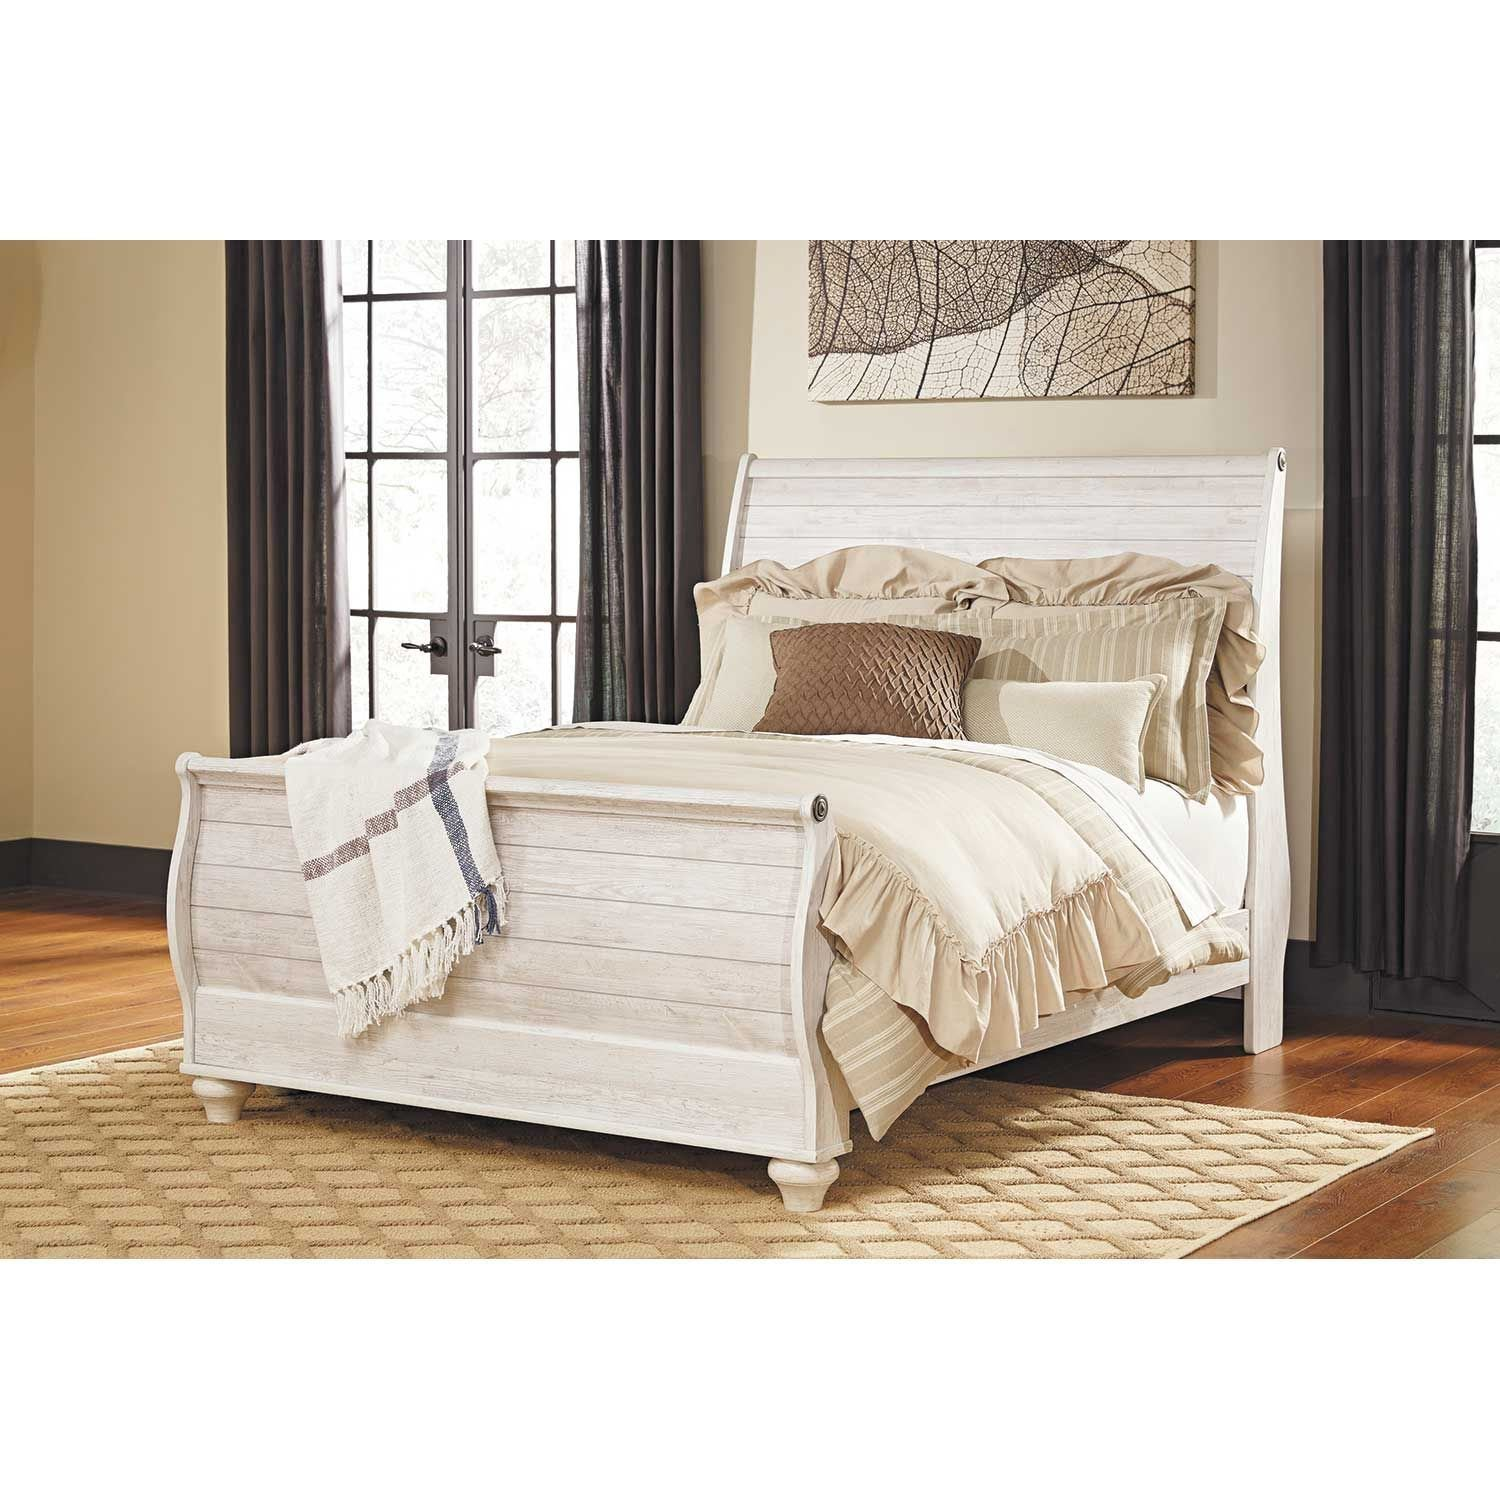 Willowton Queen Sleigh Bed B267 Qsleighbed Ashley